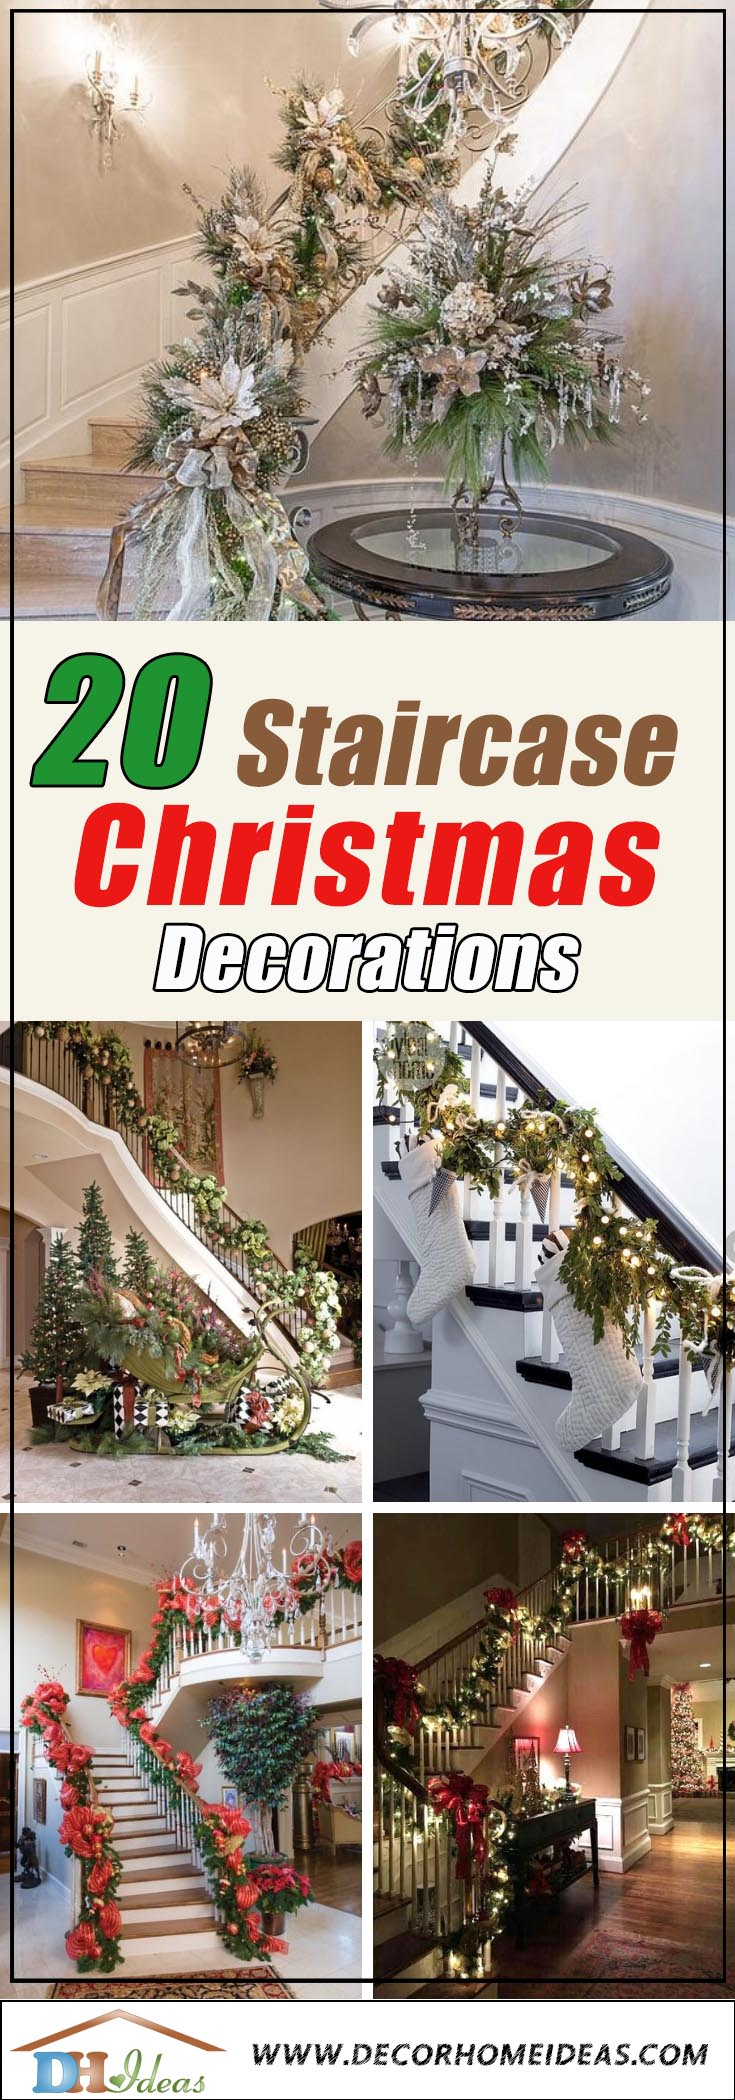 Christmas Stairways Decoration #Christmasdecor #staircase #stairs #stairway #Christmas #decorhomeideas